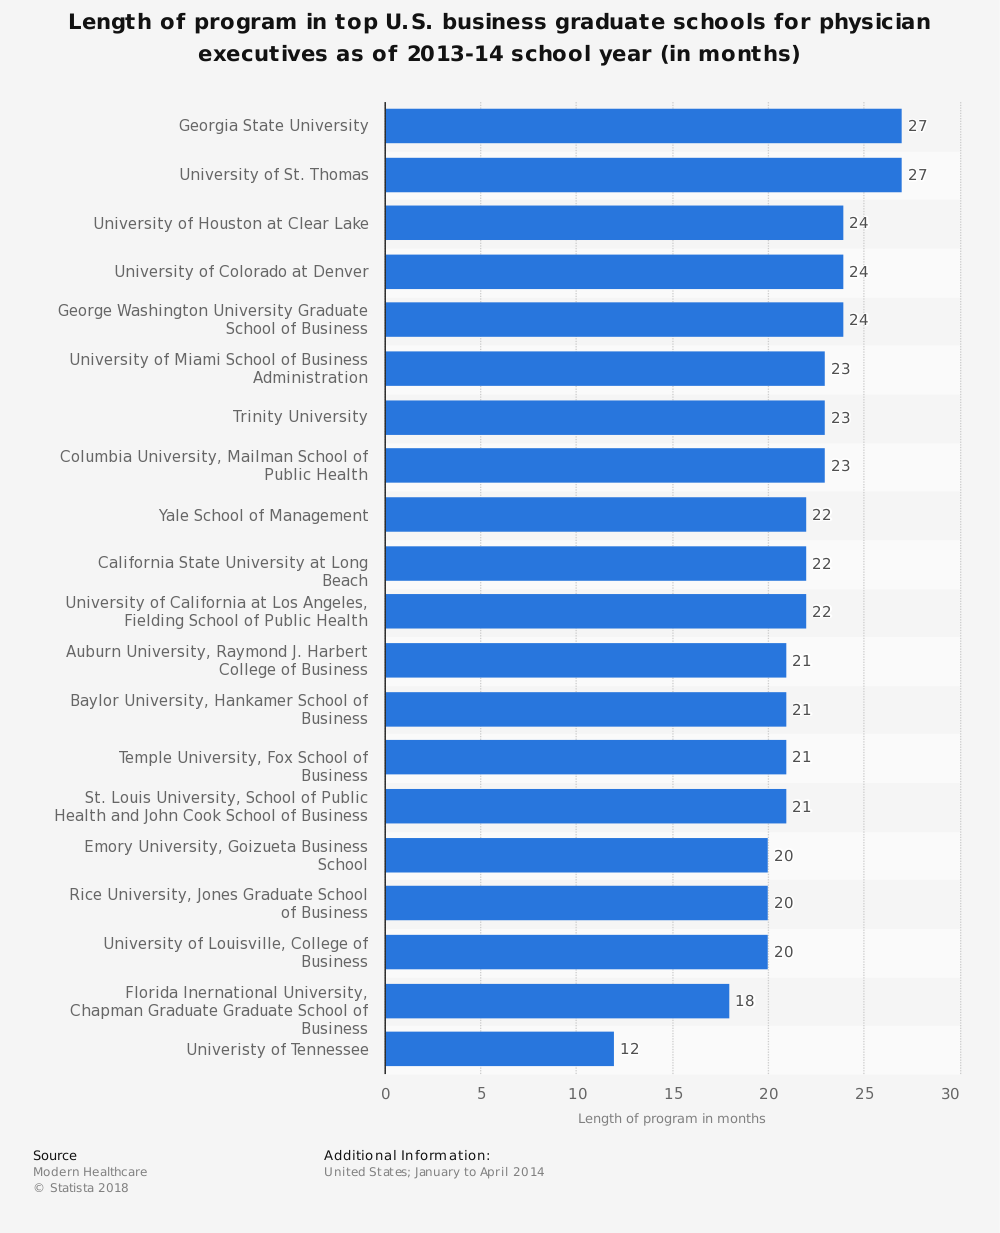 Statistic: Length of program in top U.S. business graduate schools for physician executives as of 2013-14 school year (in months) | Statista